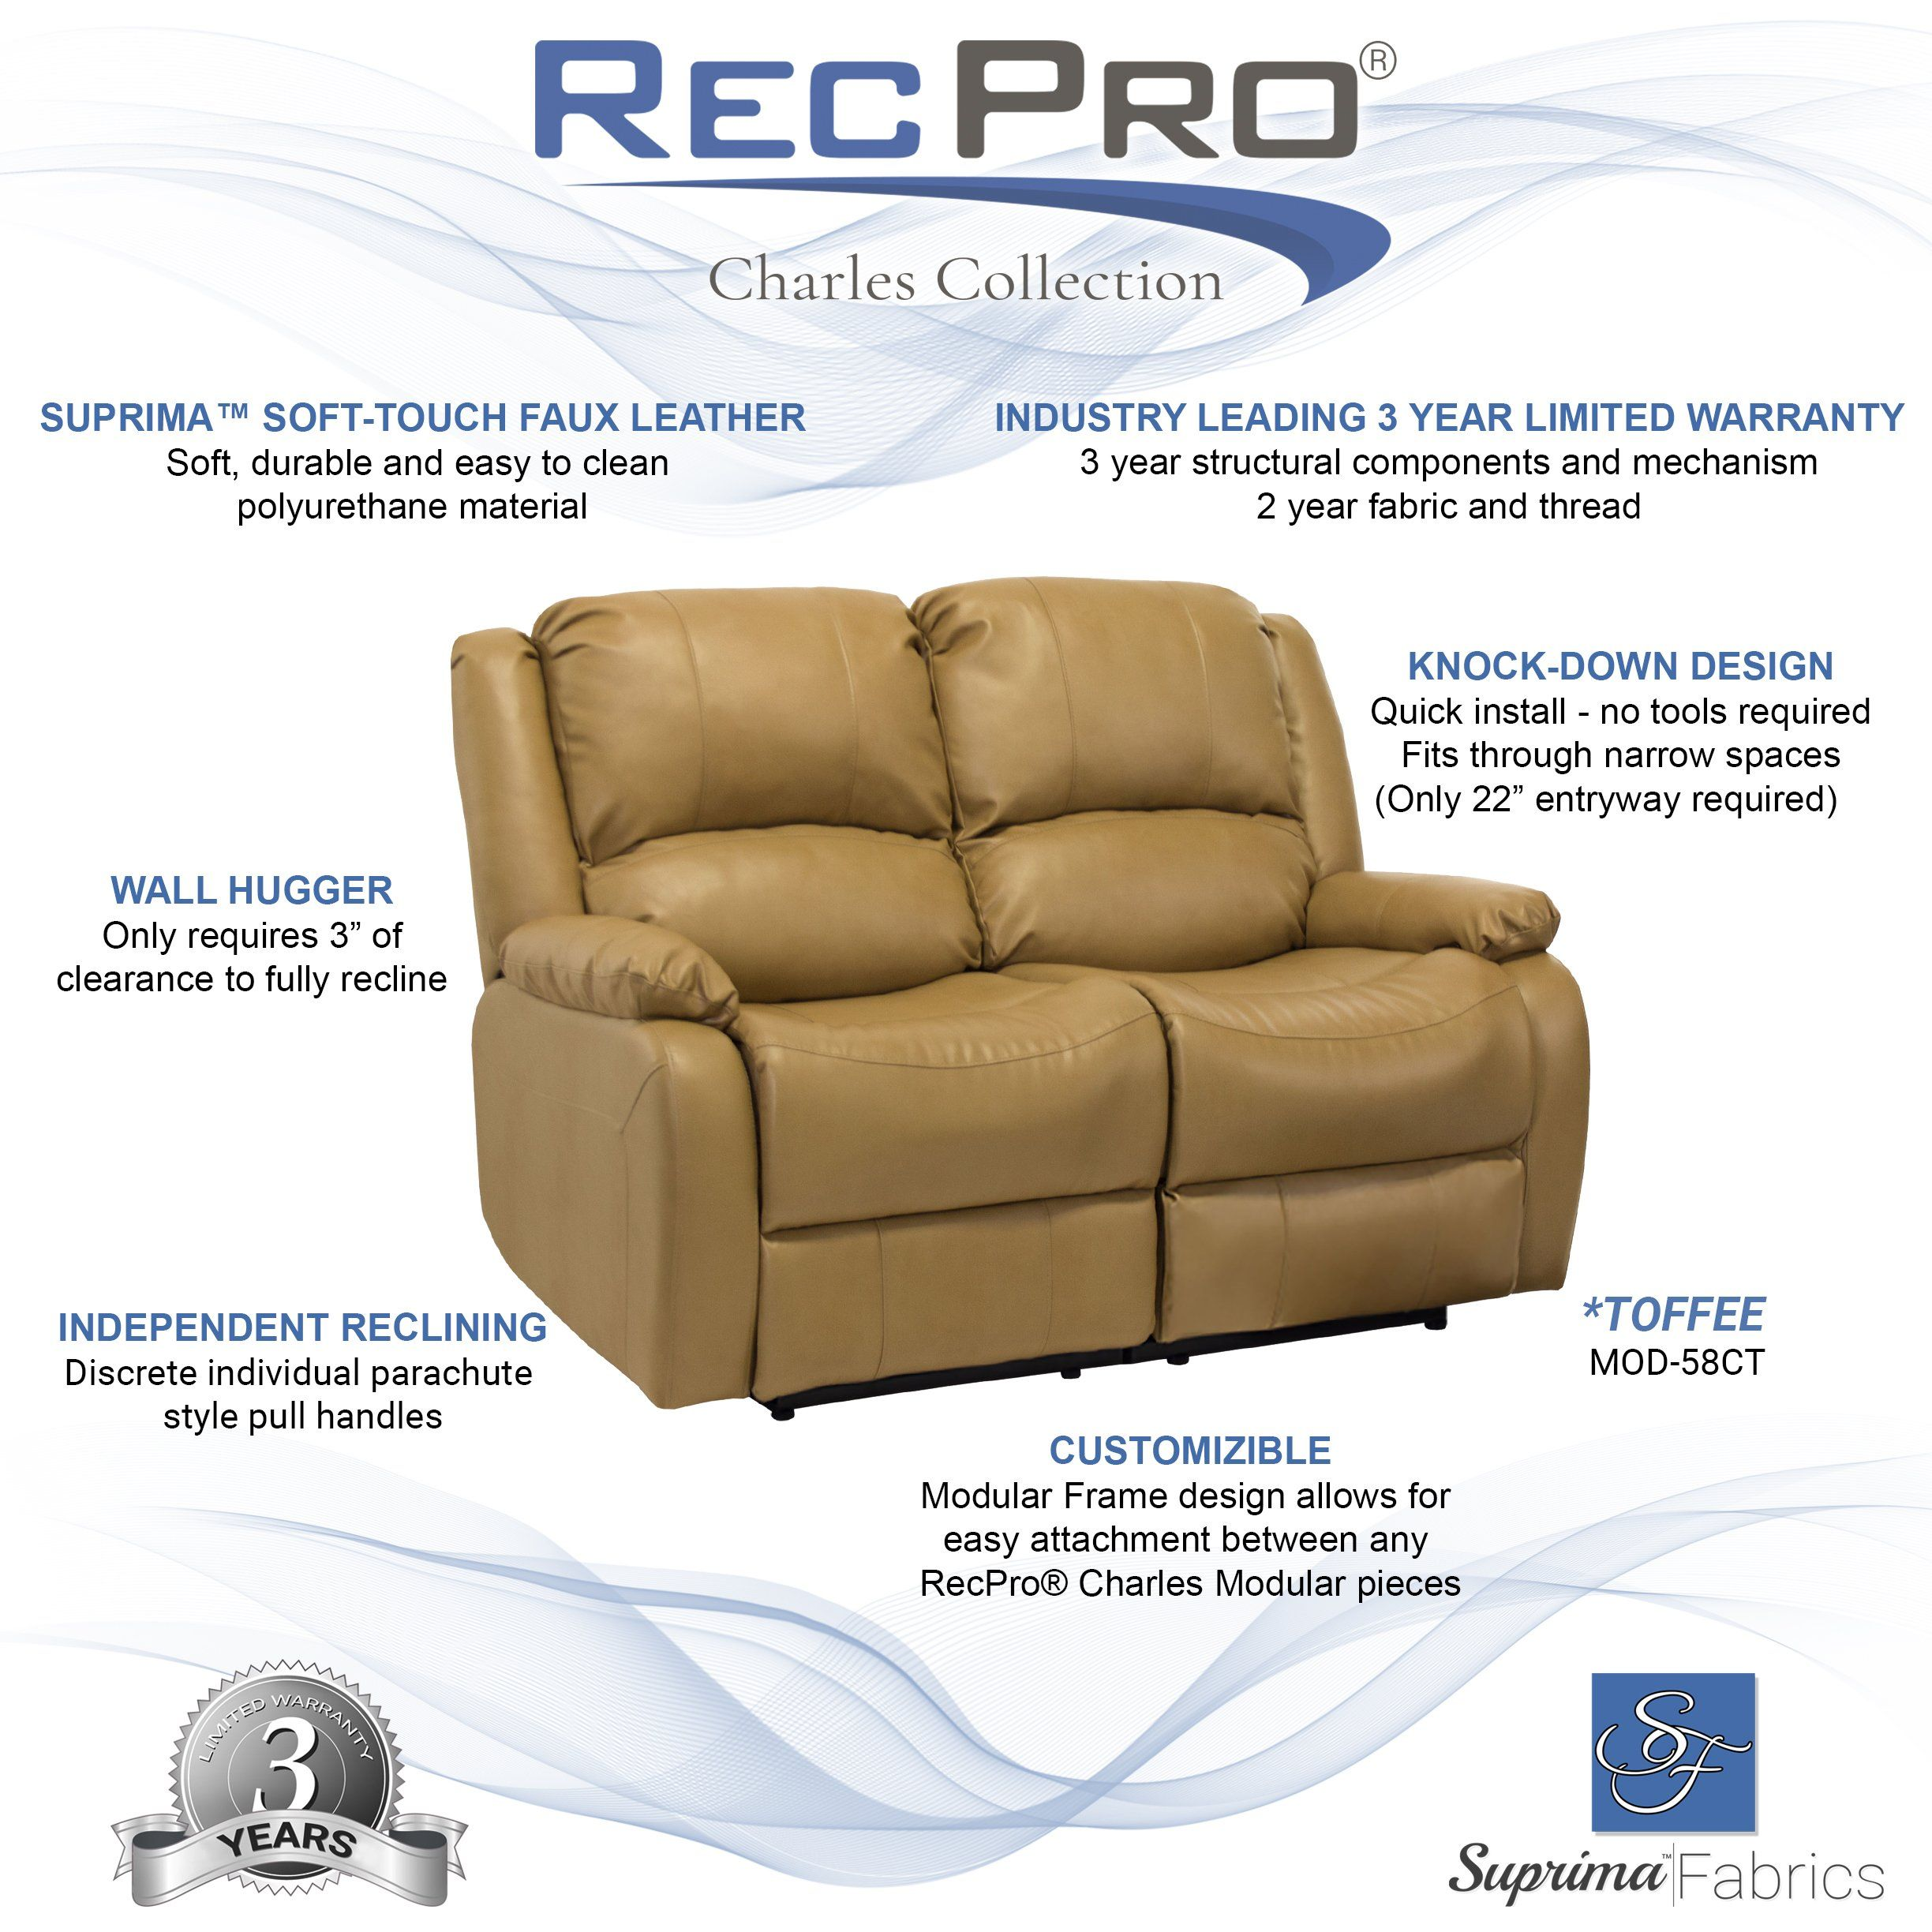 Pleasing Recpro Charles Collection 58 Double Recliner Rv Sofa Rv Zero Gmtry Best Dining Table And Chair Ideas Images Gmtryco